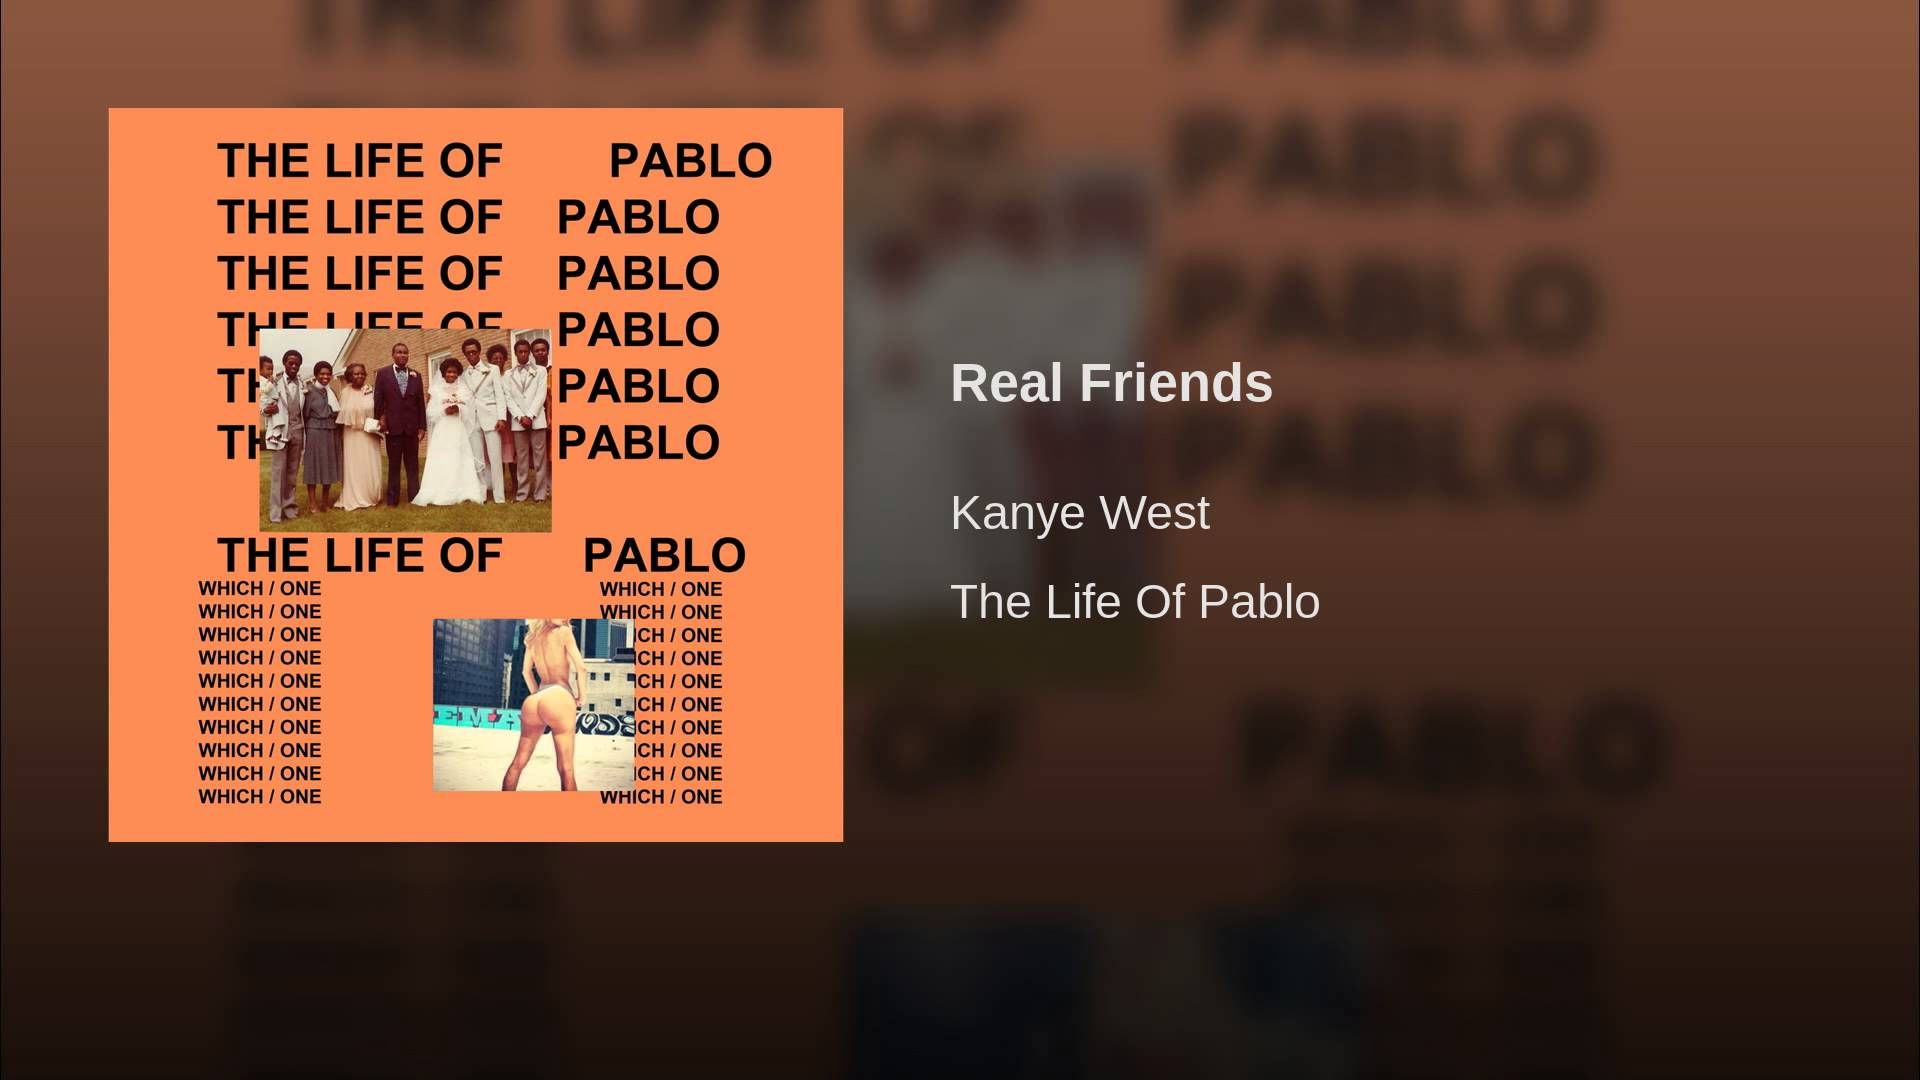 Real Friends Kanye West Kanye Chance The Rapper